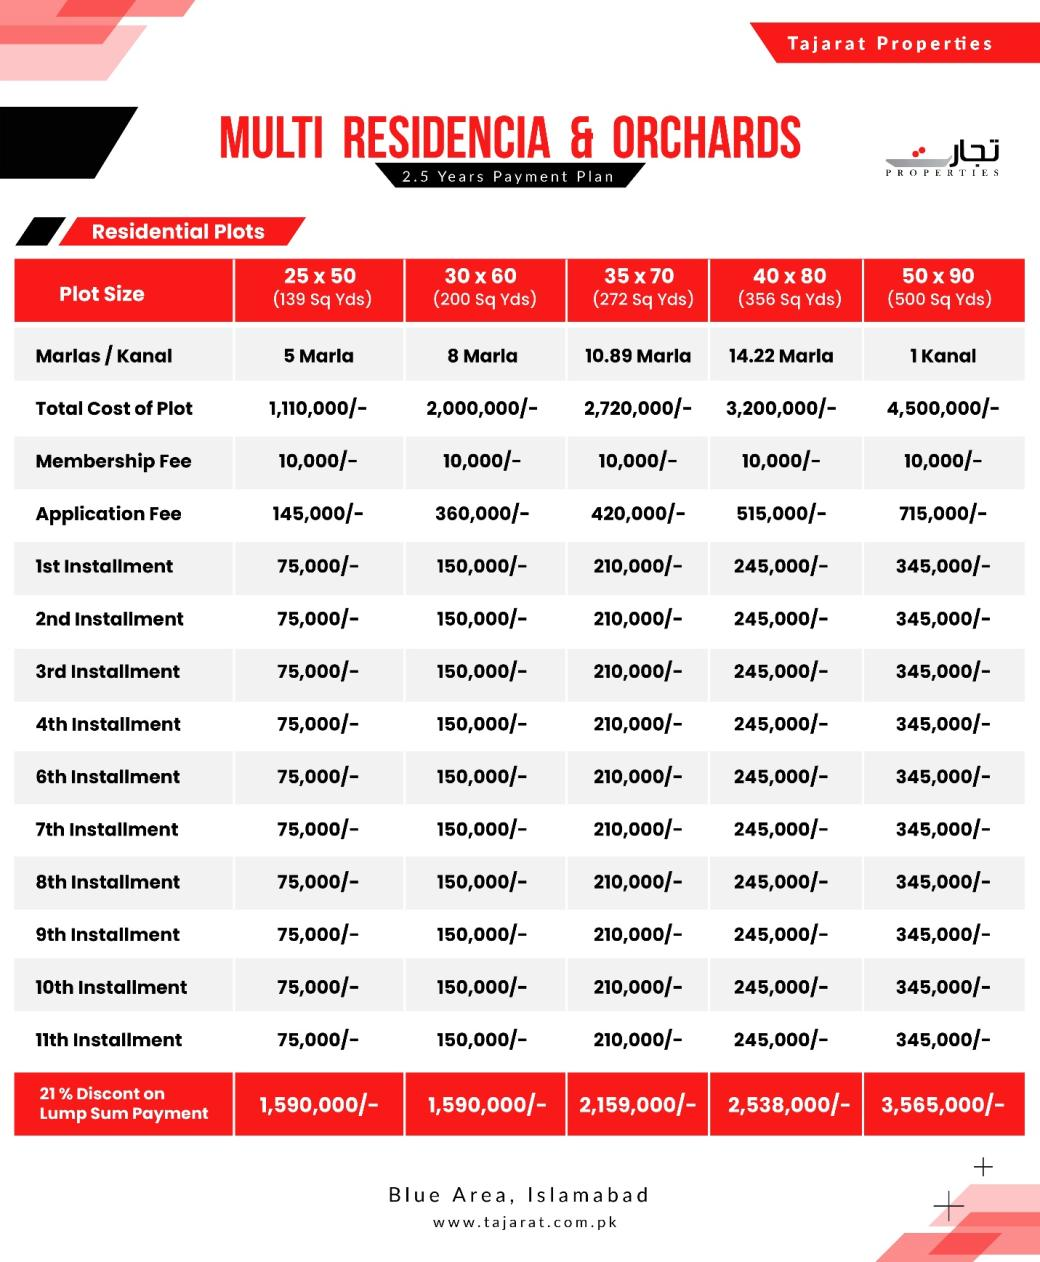 Multi Residencia & Orchards Islamabad Residential Plots